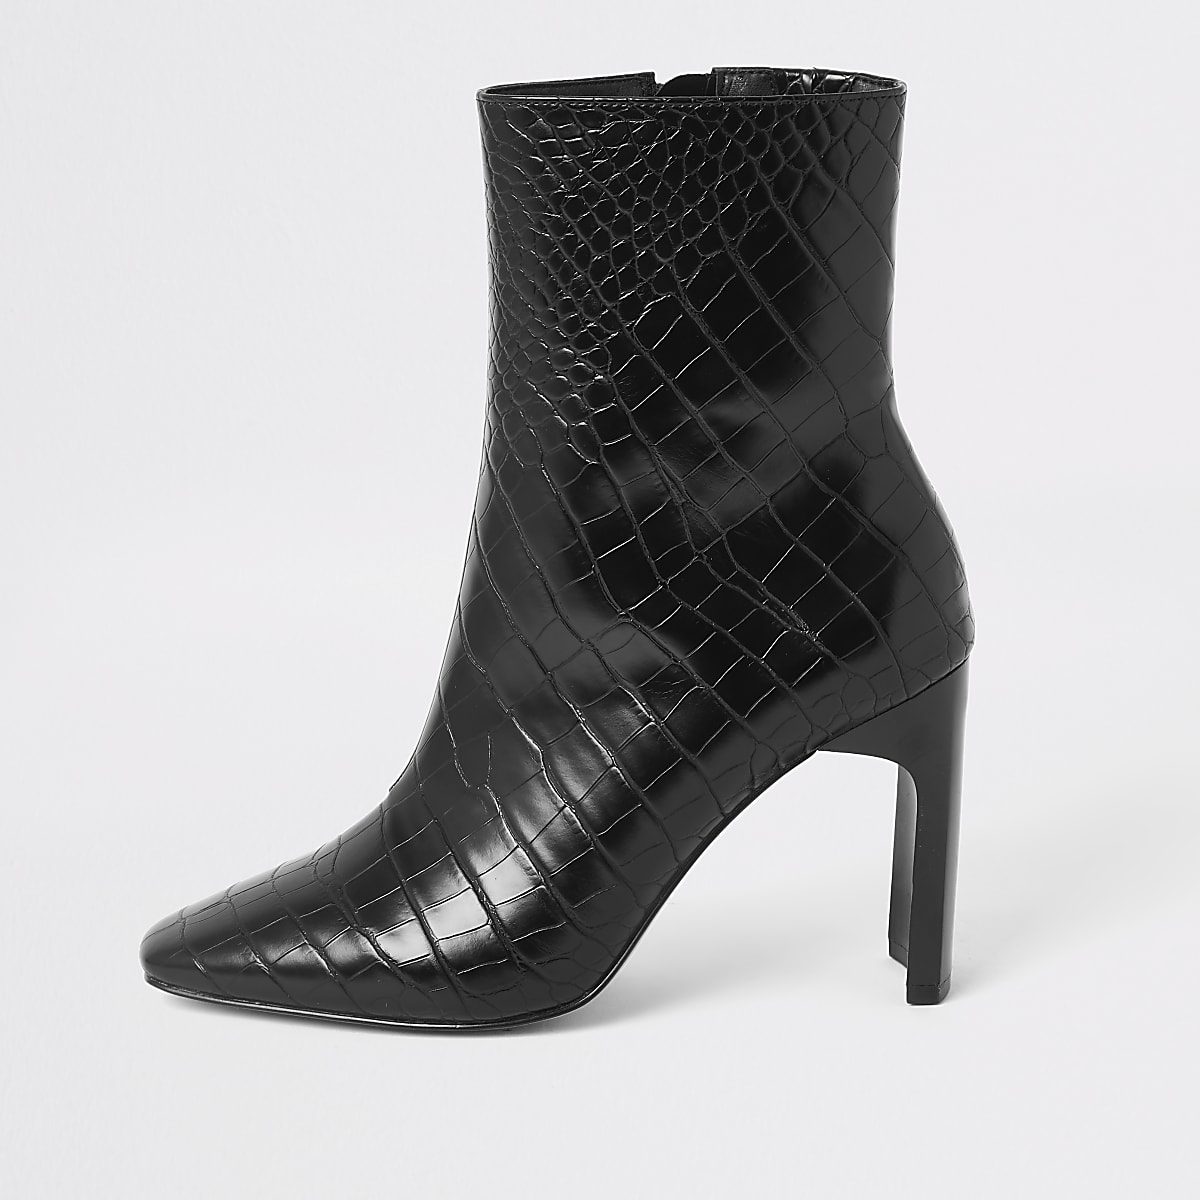 Black croc embossed high heel ankle boot